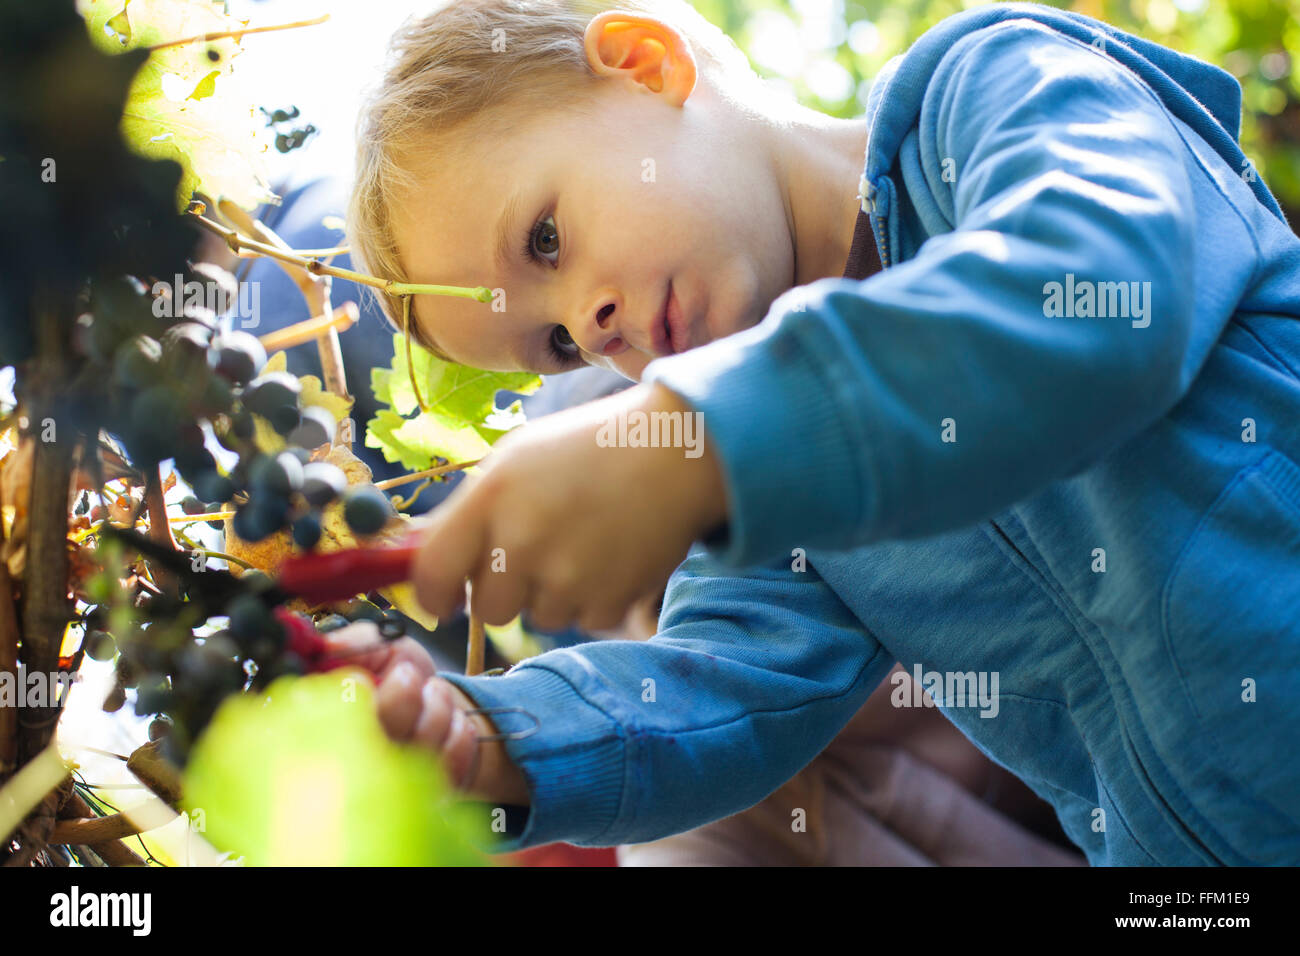 Father and son harvesting grapes together in vineyard - Stock Image